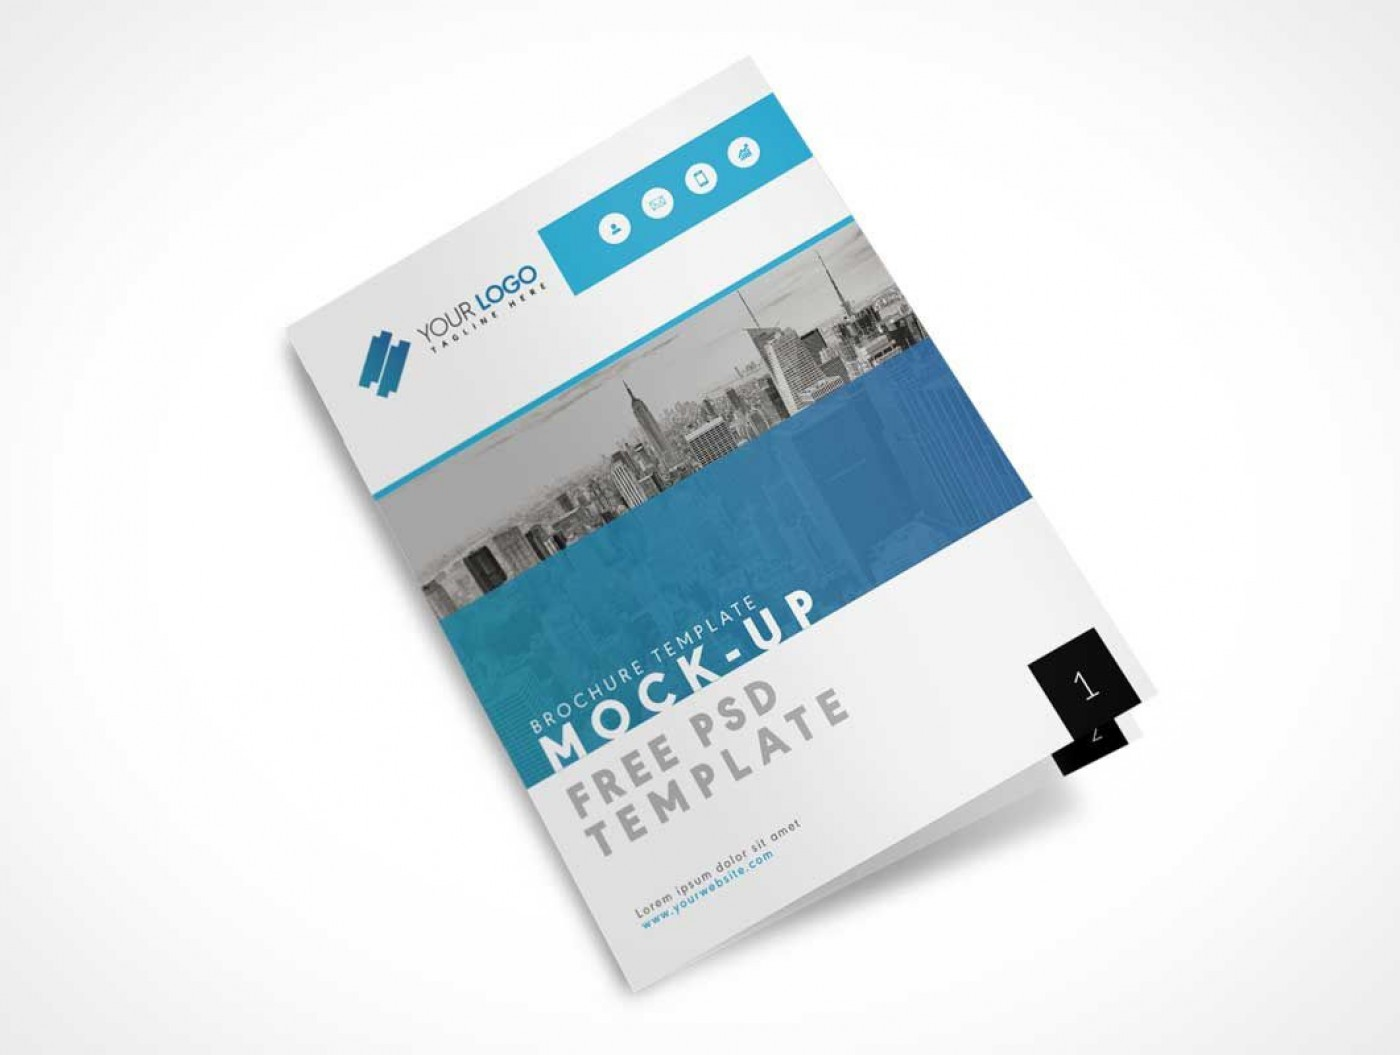 009 Exceptional Brochure Template Photoshop Cs6 Free Download Inspiration 1400